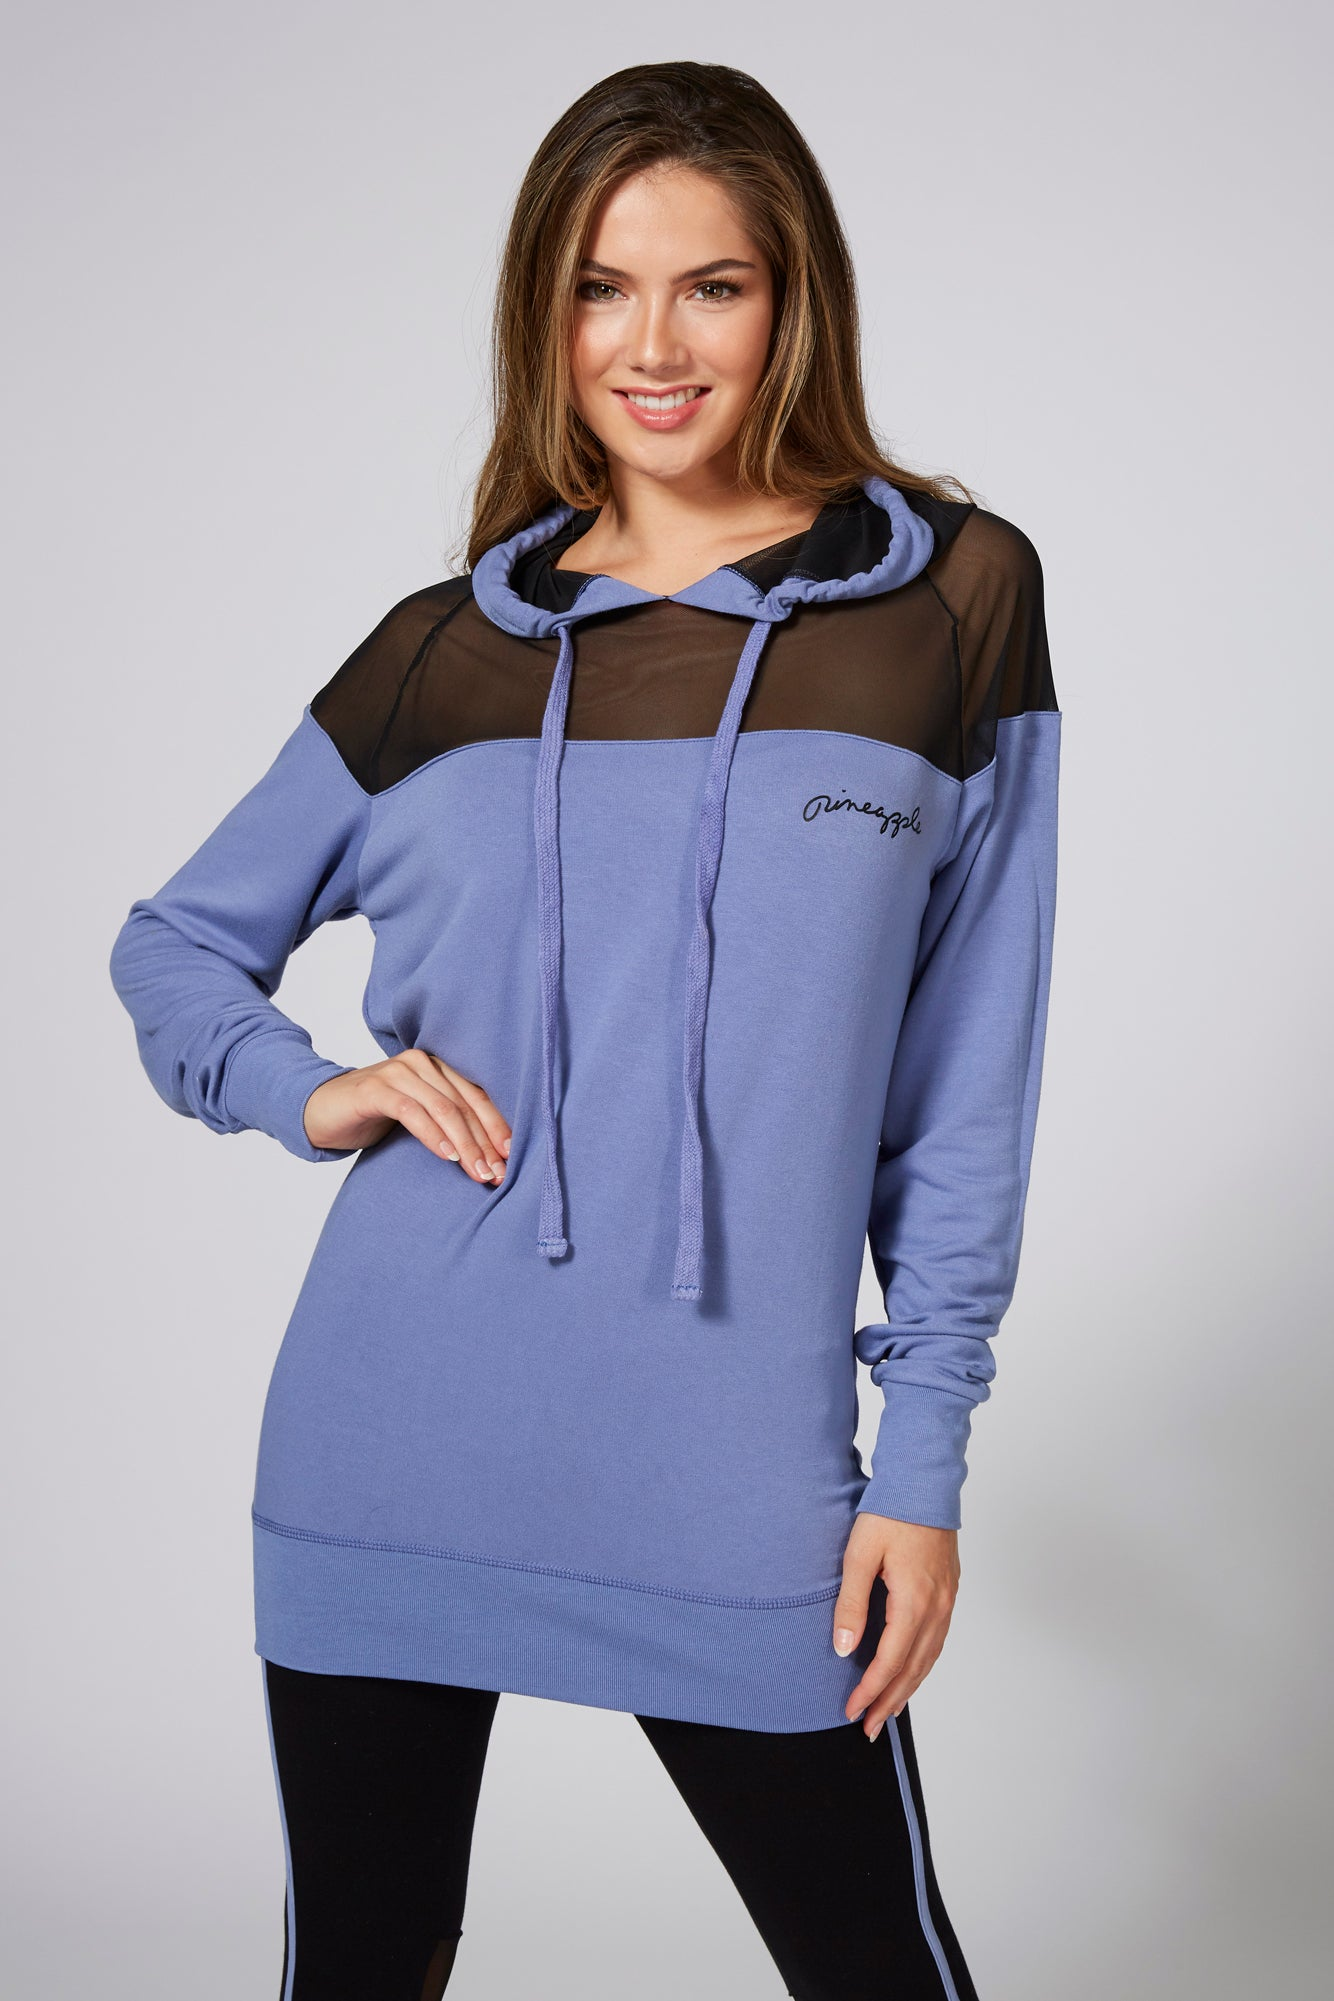 Pineapple Women's Longline Mesh Panel Blue Hooded Top TH15310D1